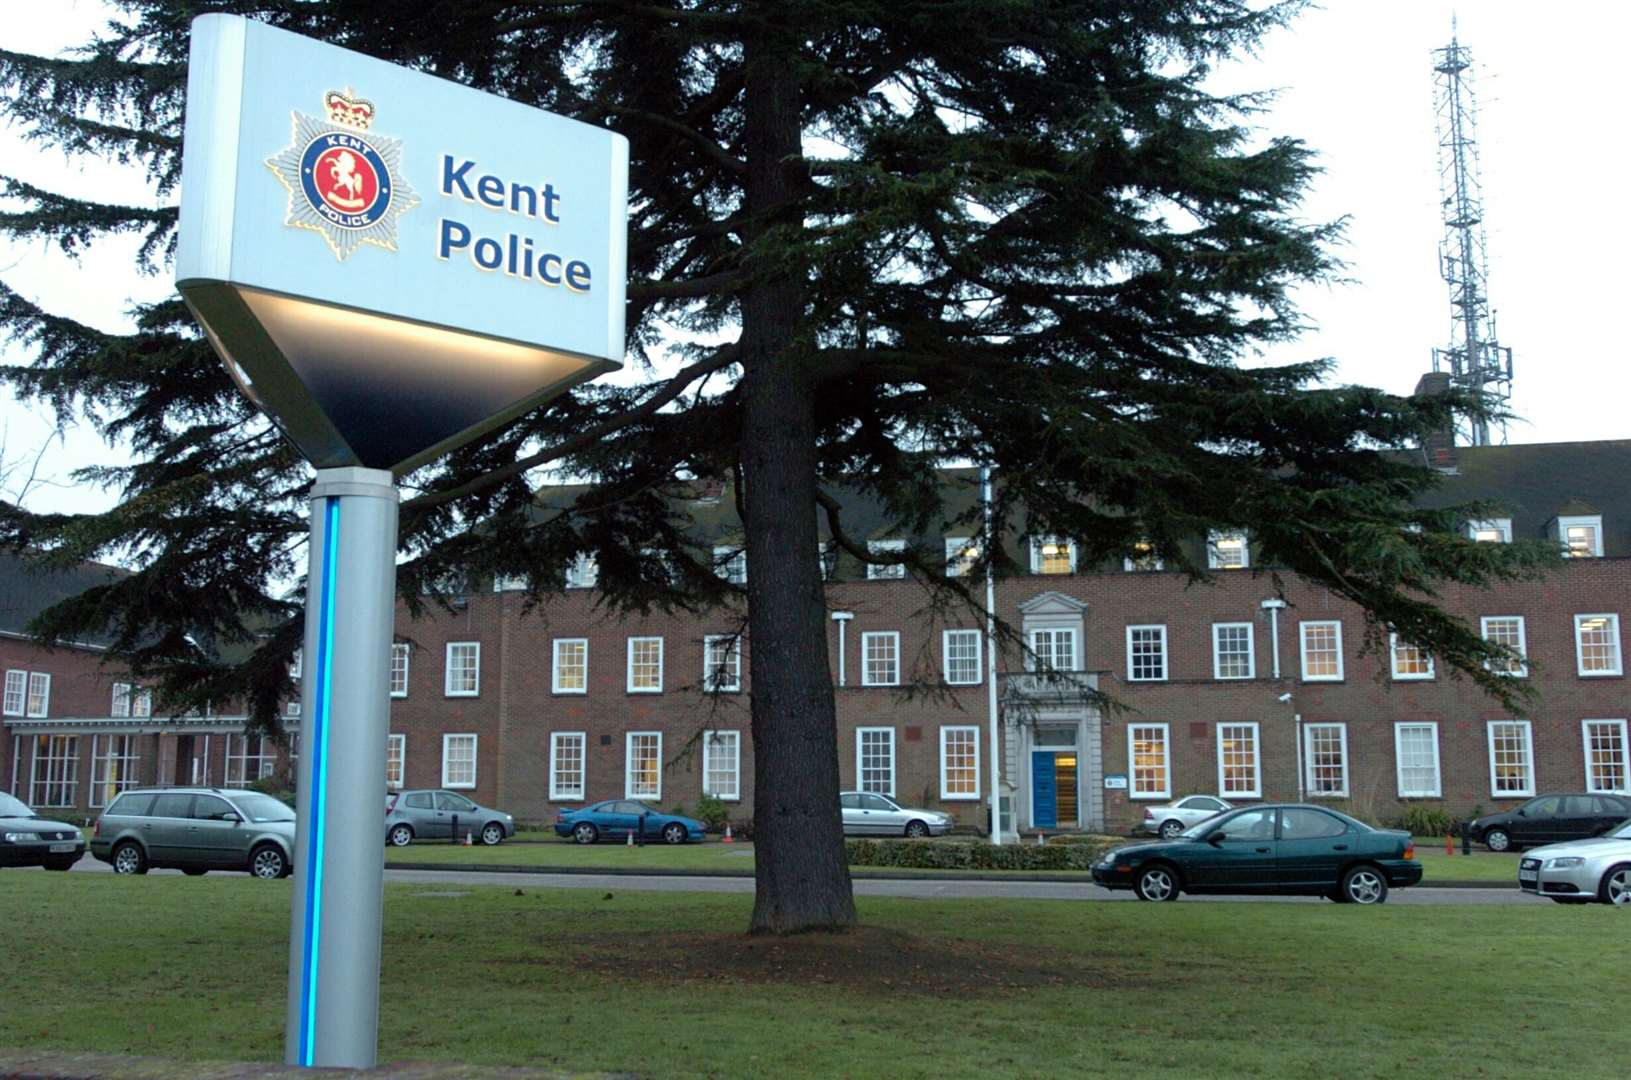 The misconduct hearing took place at Kent Police HQ